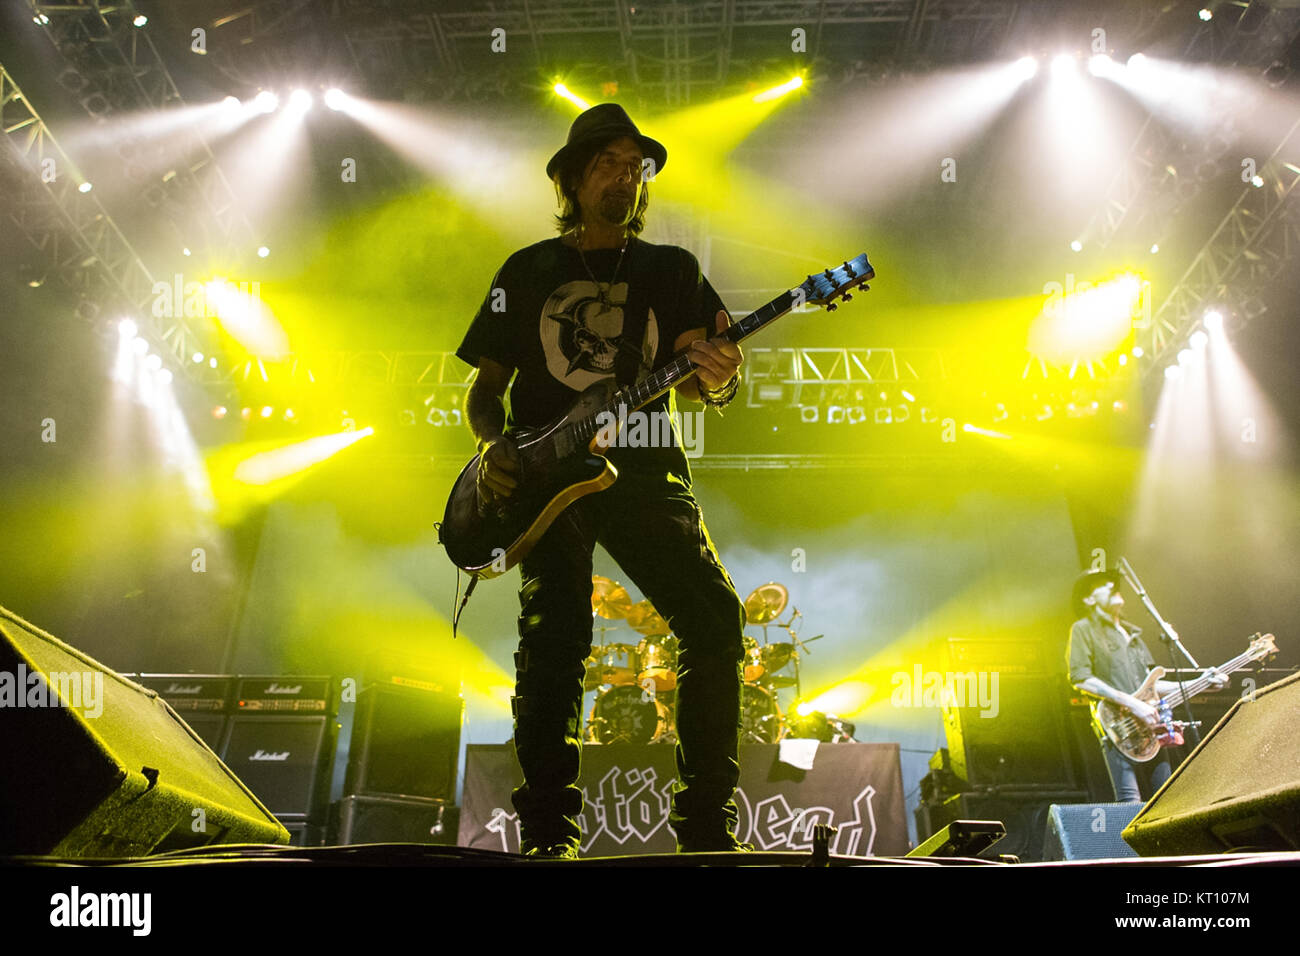 Phil Campbell Guitarist Stock Photos Amp Phil Campbell